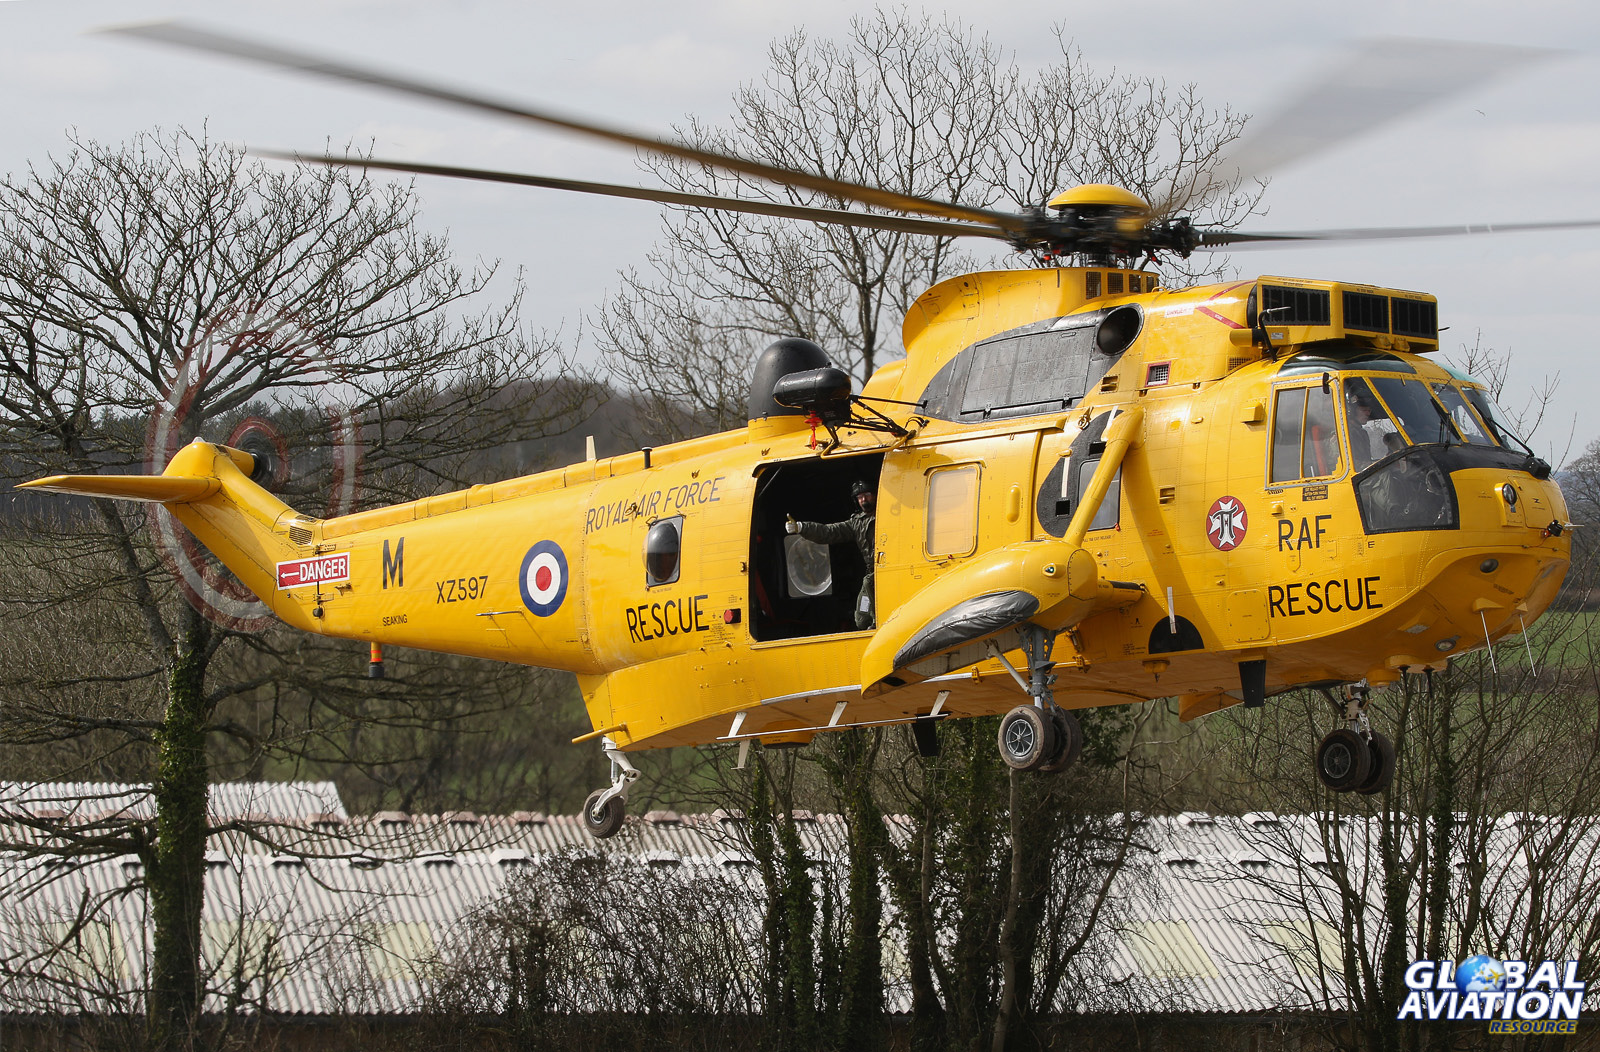 XZ597_Seaking_HistoricHelicopters_Chard_GAR_KEVINWILLS2685-copy